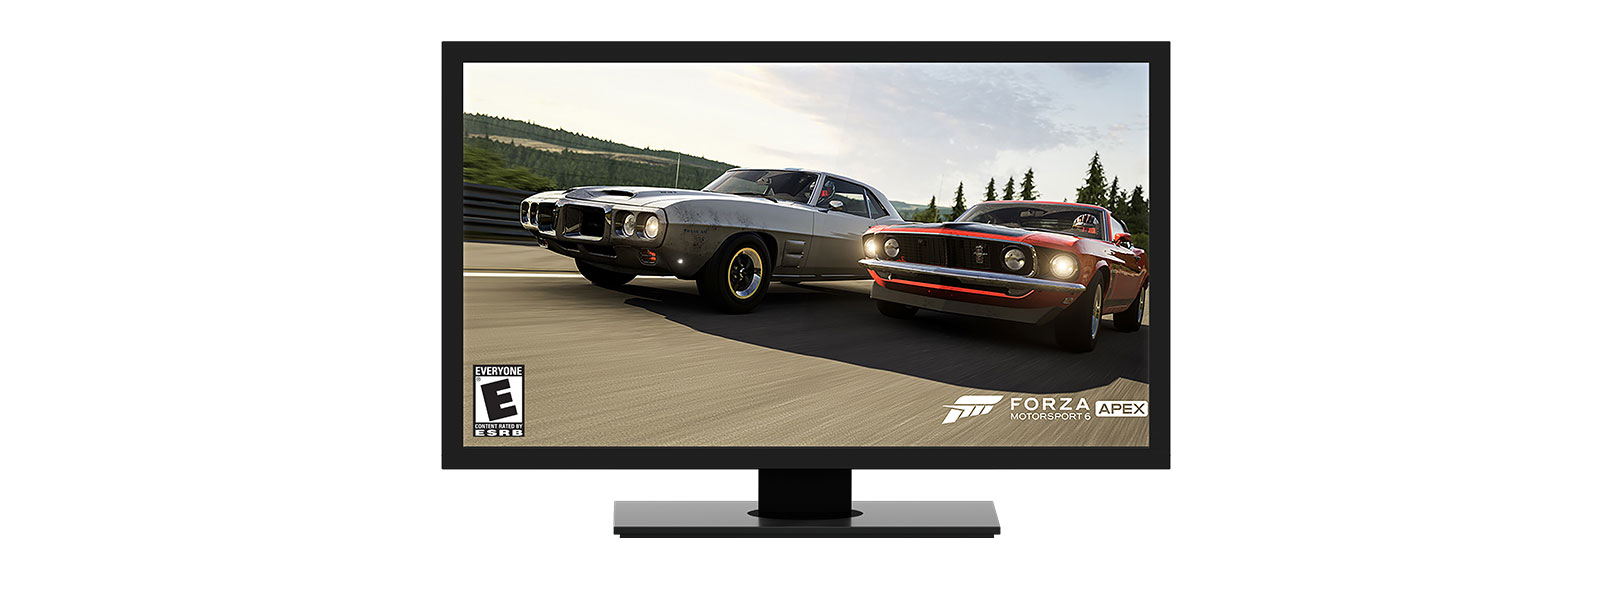 Forza-game op Windows-pc